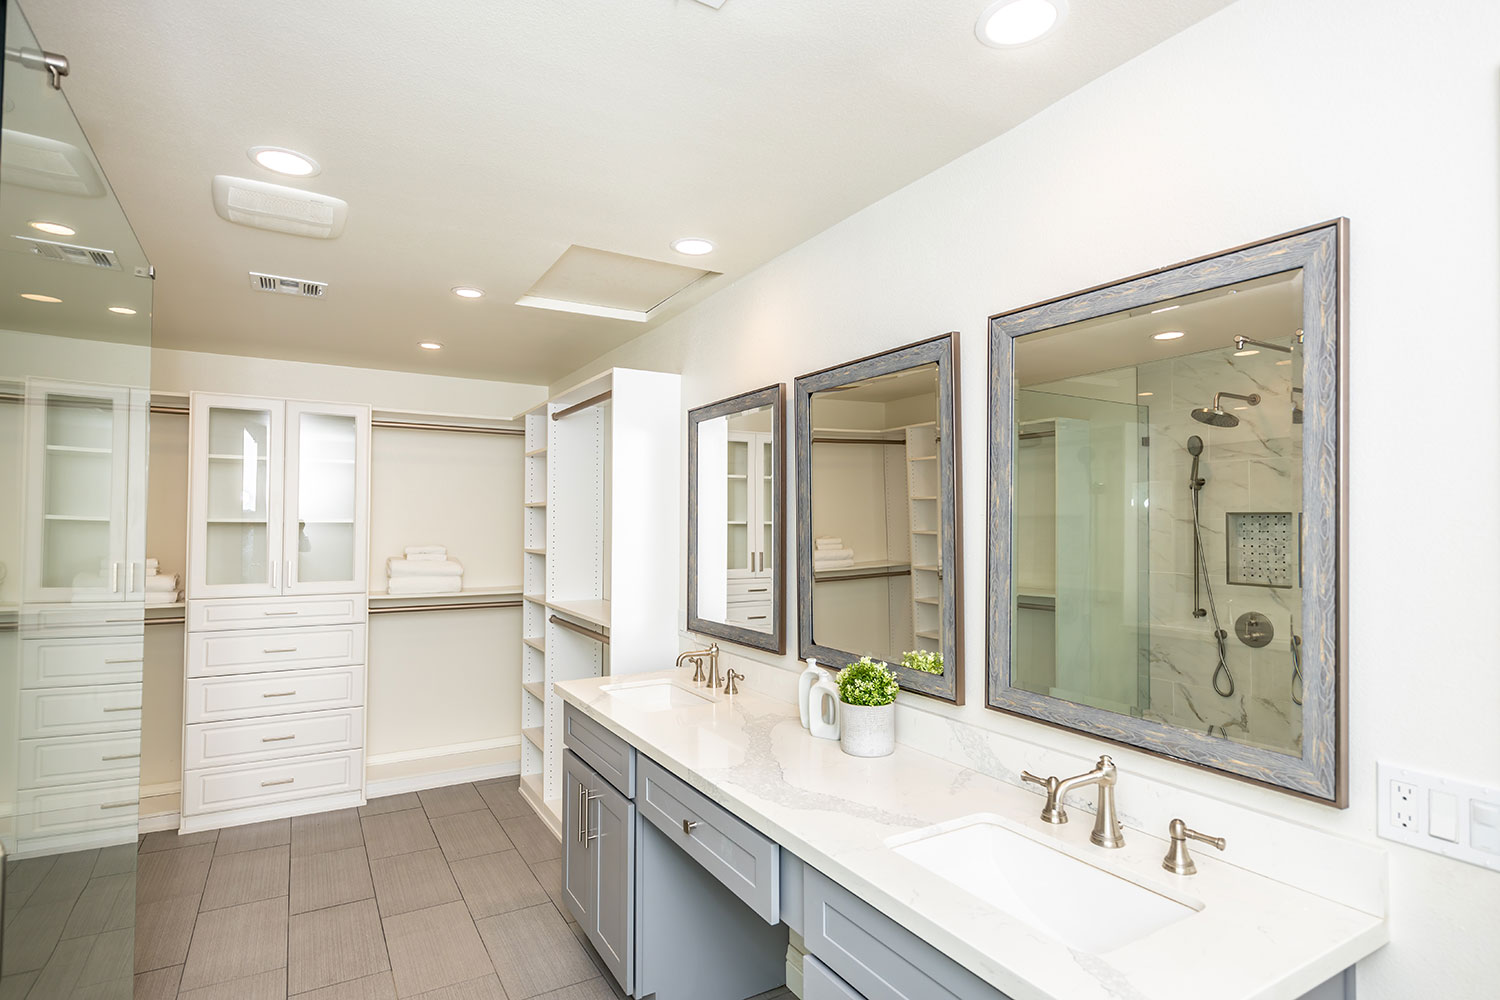 Norco bathroom with white countertops